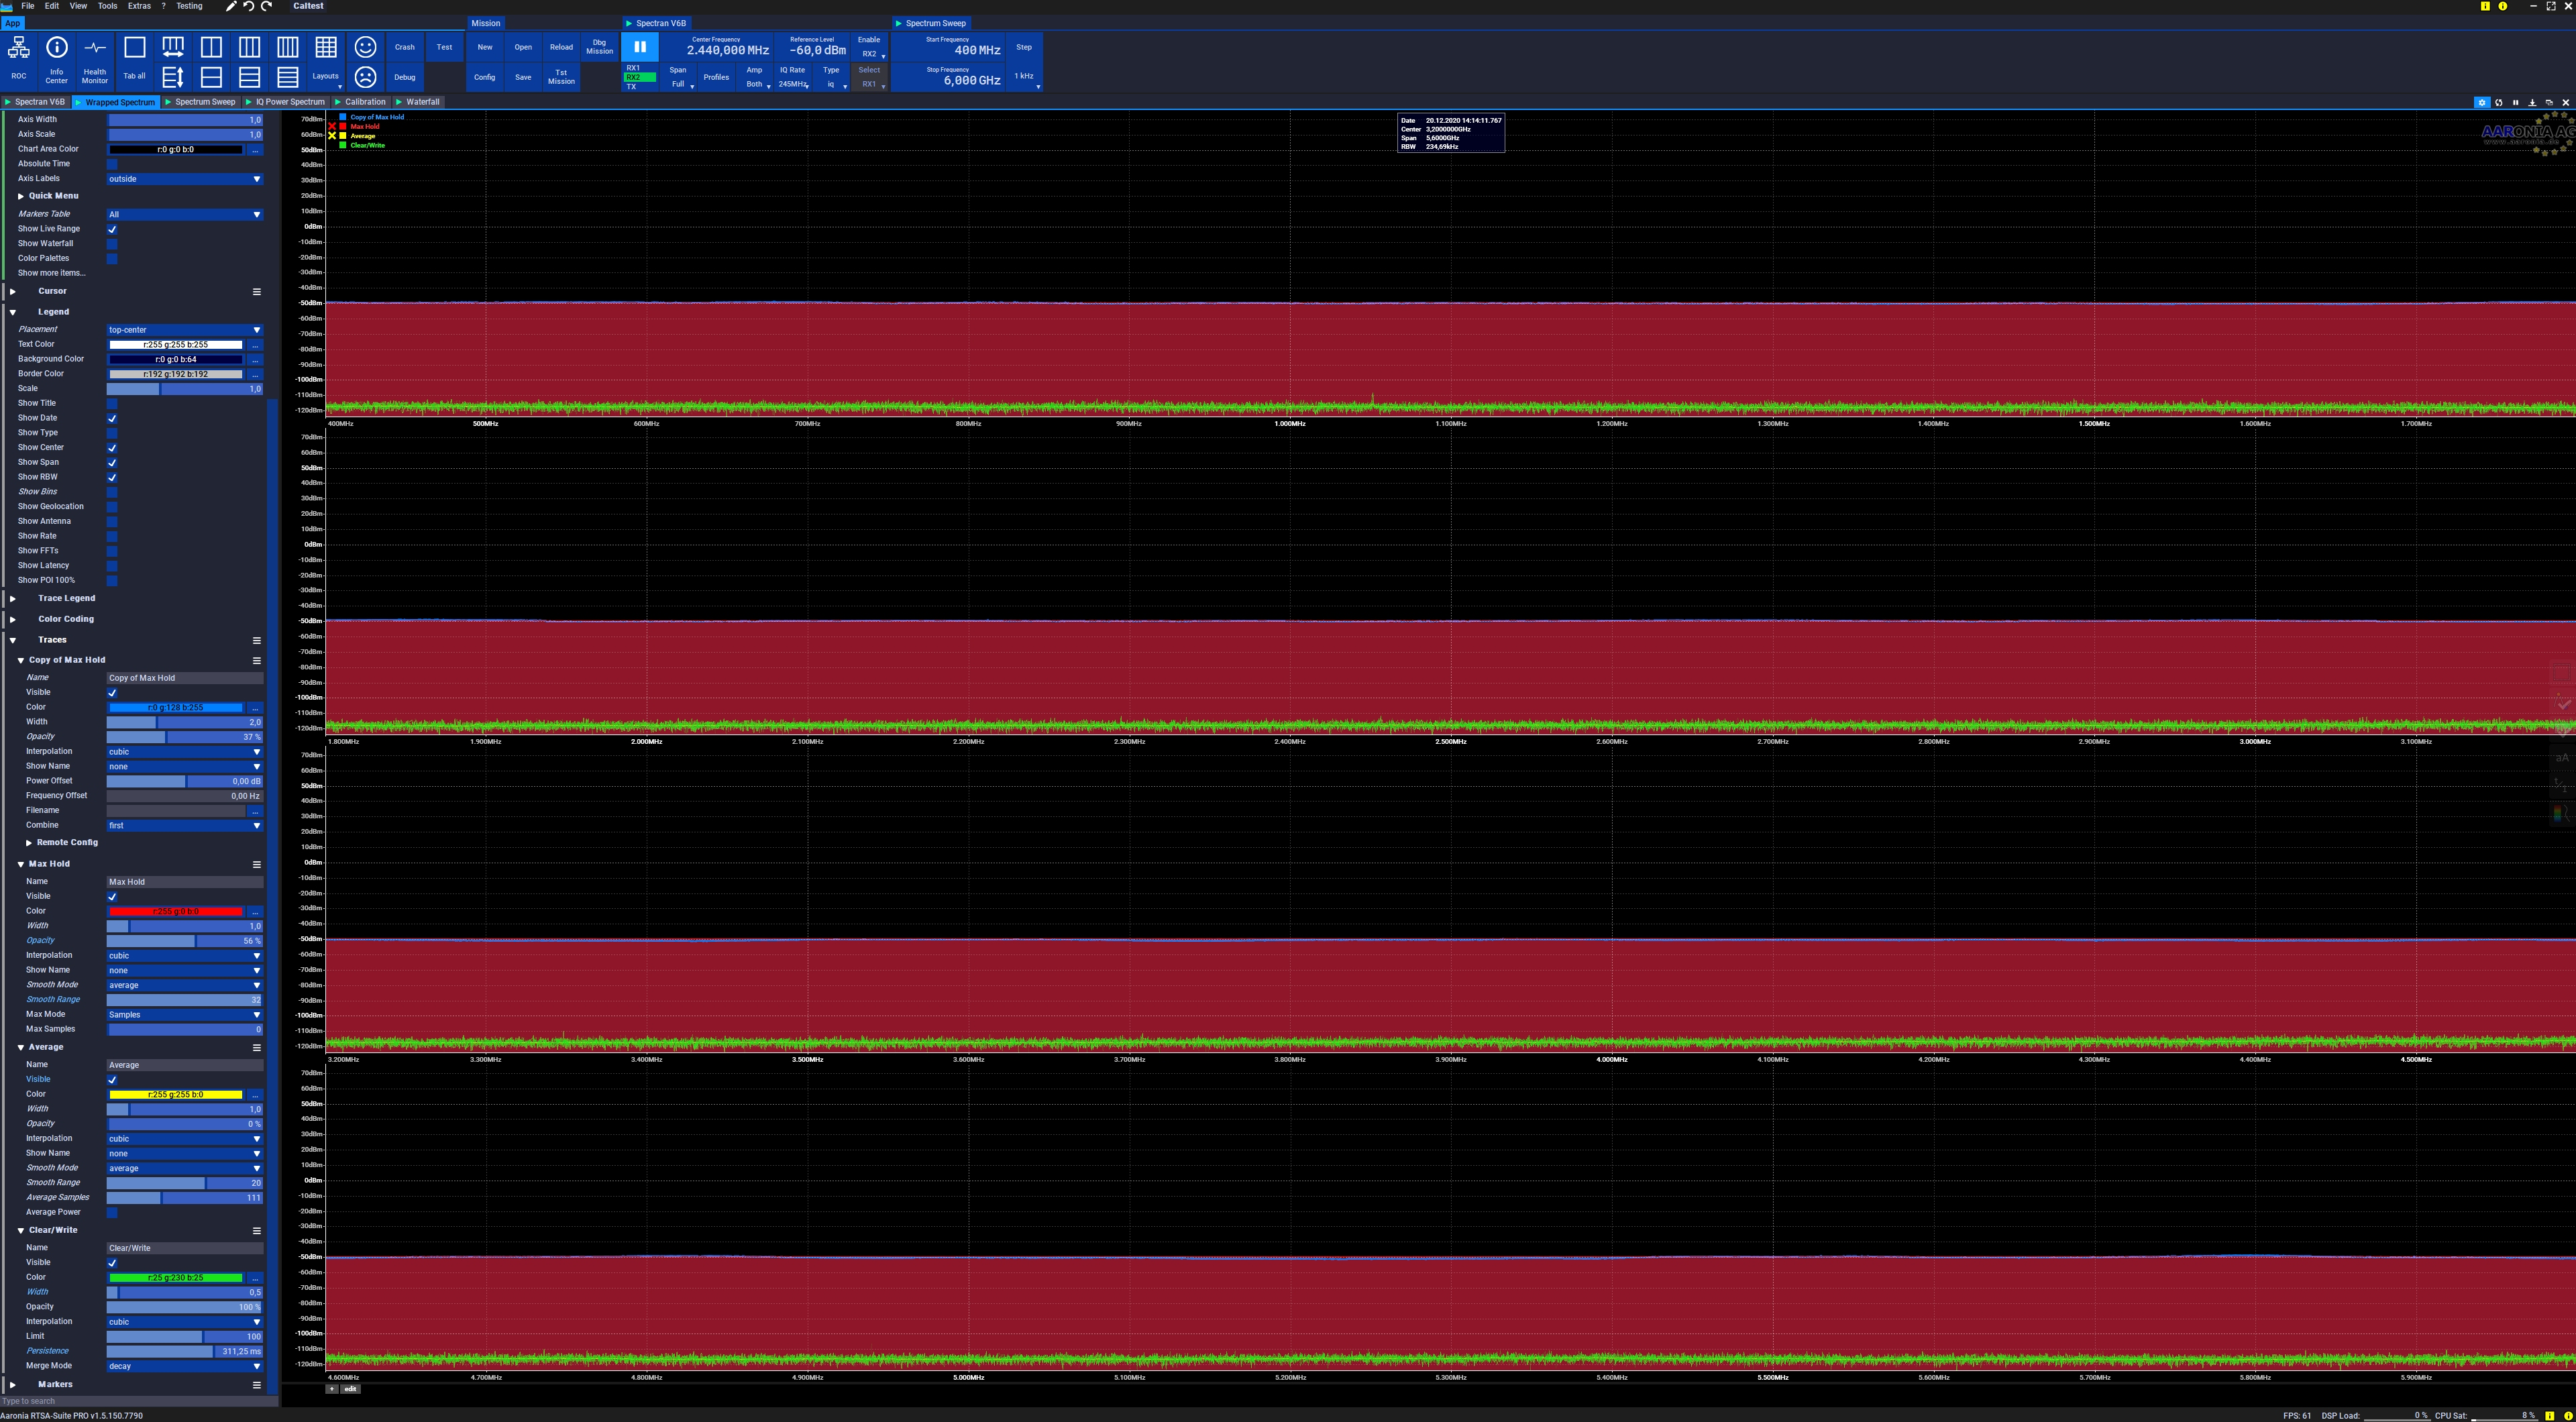 SPECTRAN V6 Default Accuracy over the full 6GHz band